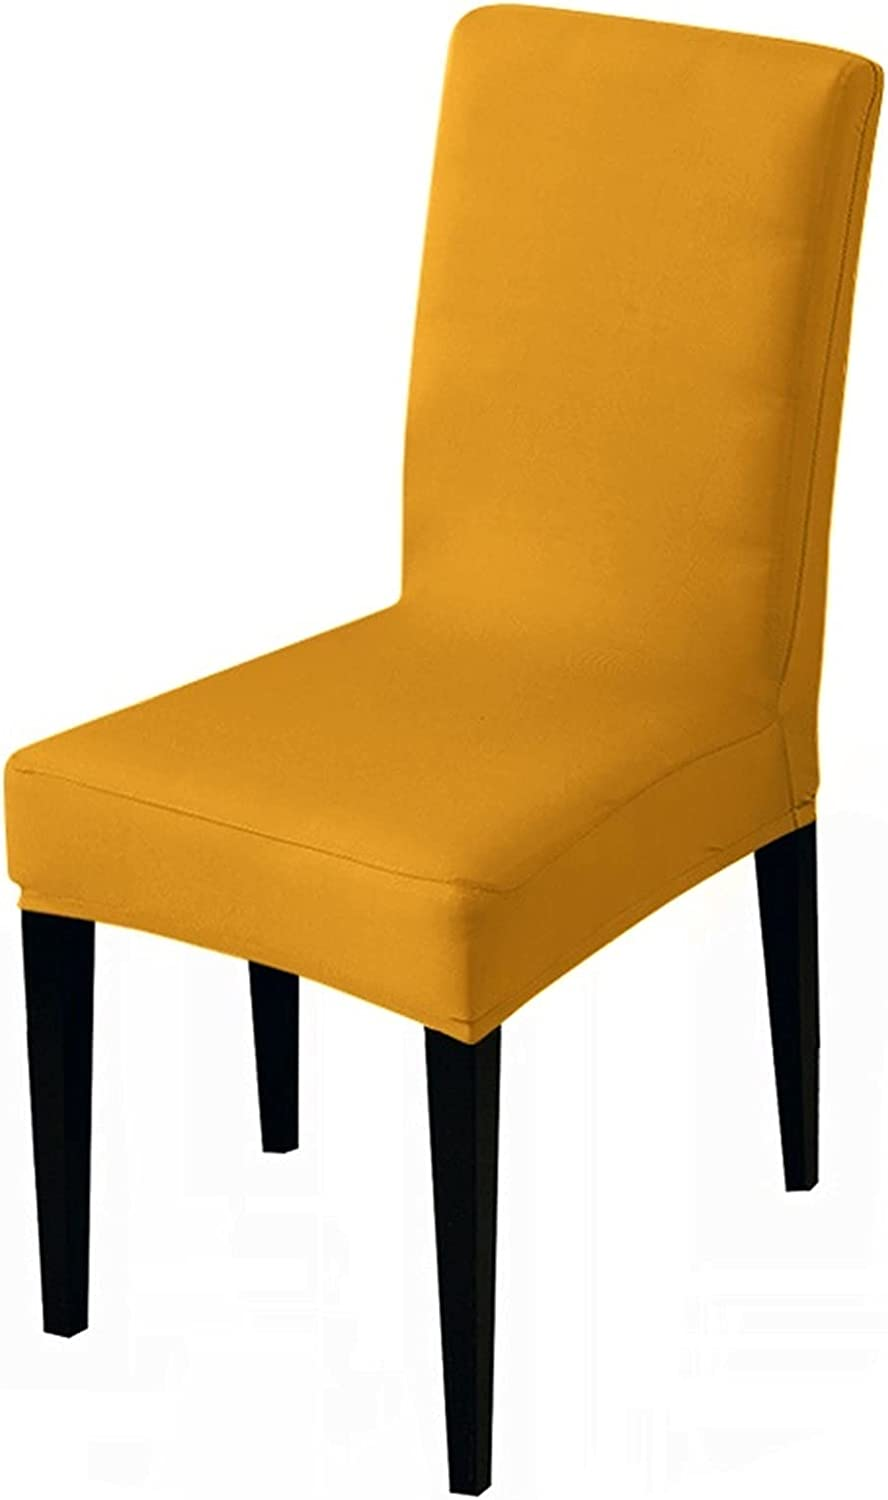 SYOUCC Chair All items in the store Covers Universal Size Cheap Over item handling ☆ Cover Elastic Big